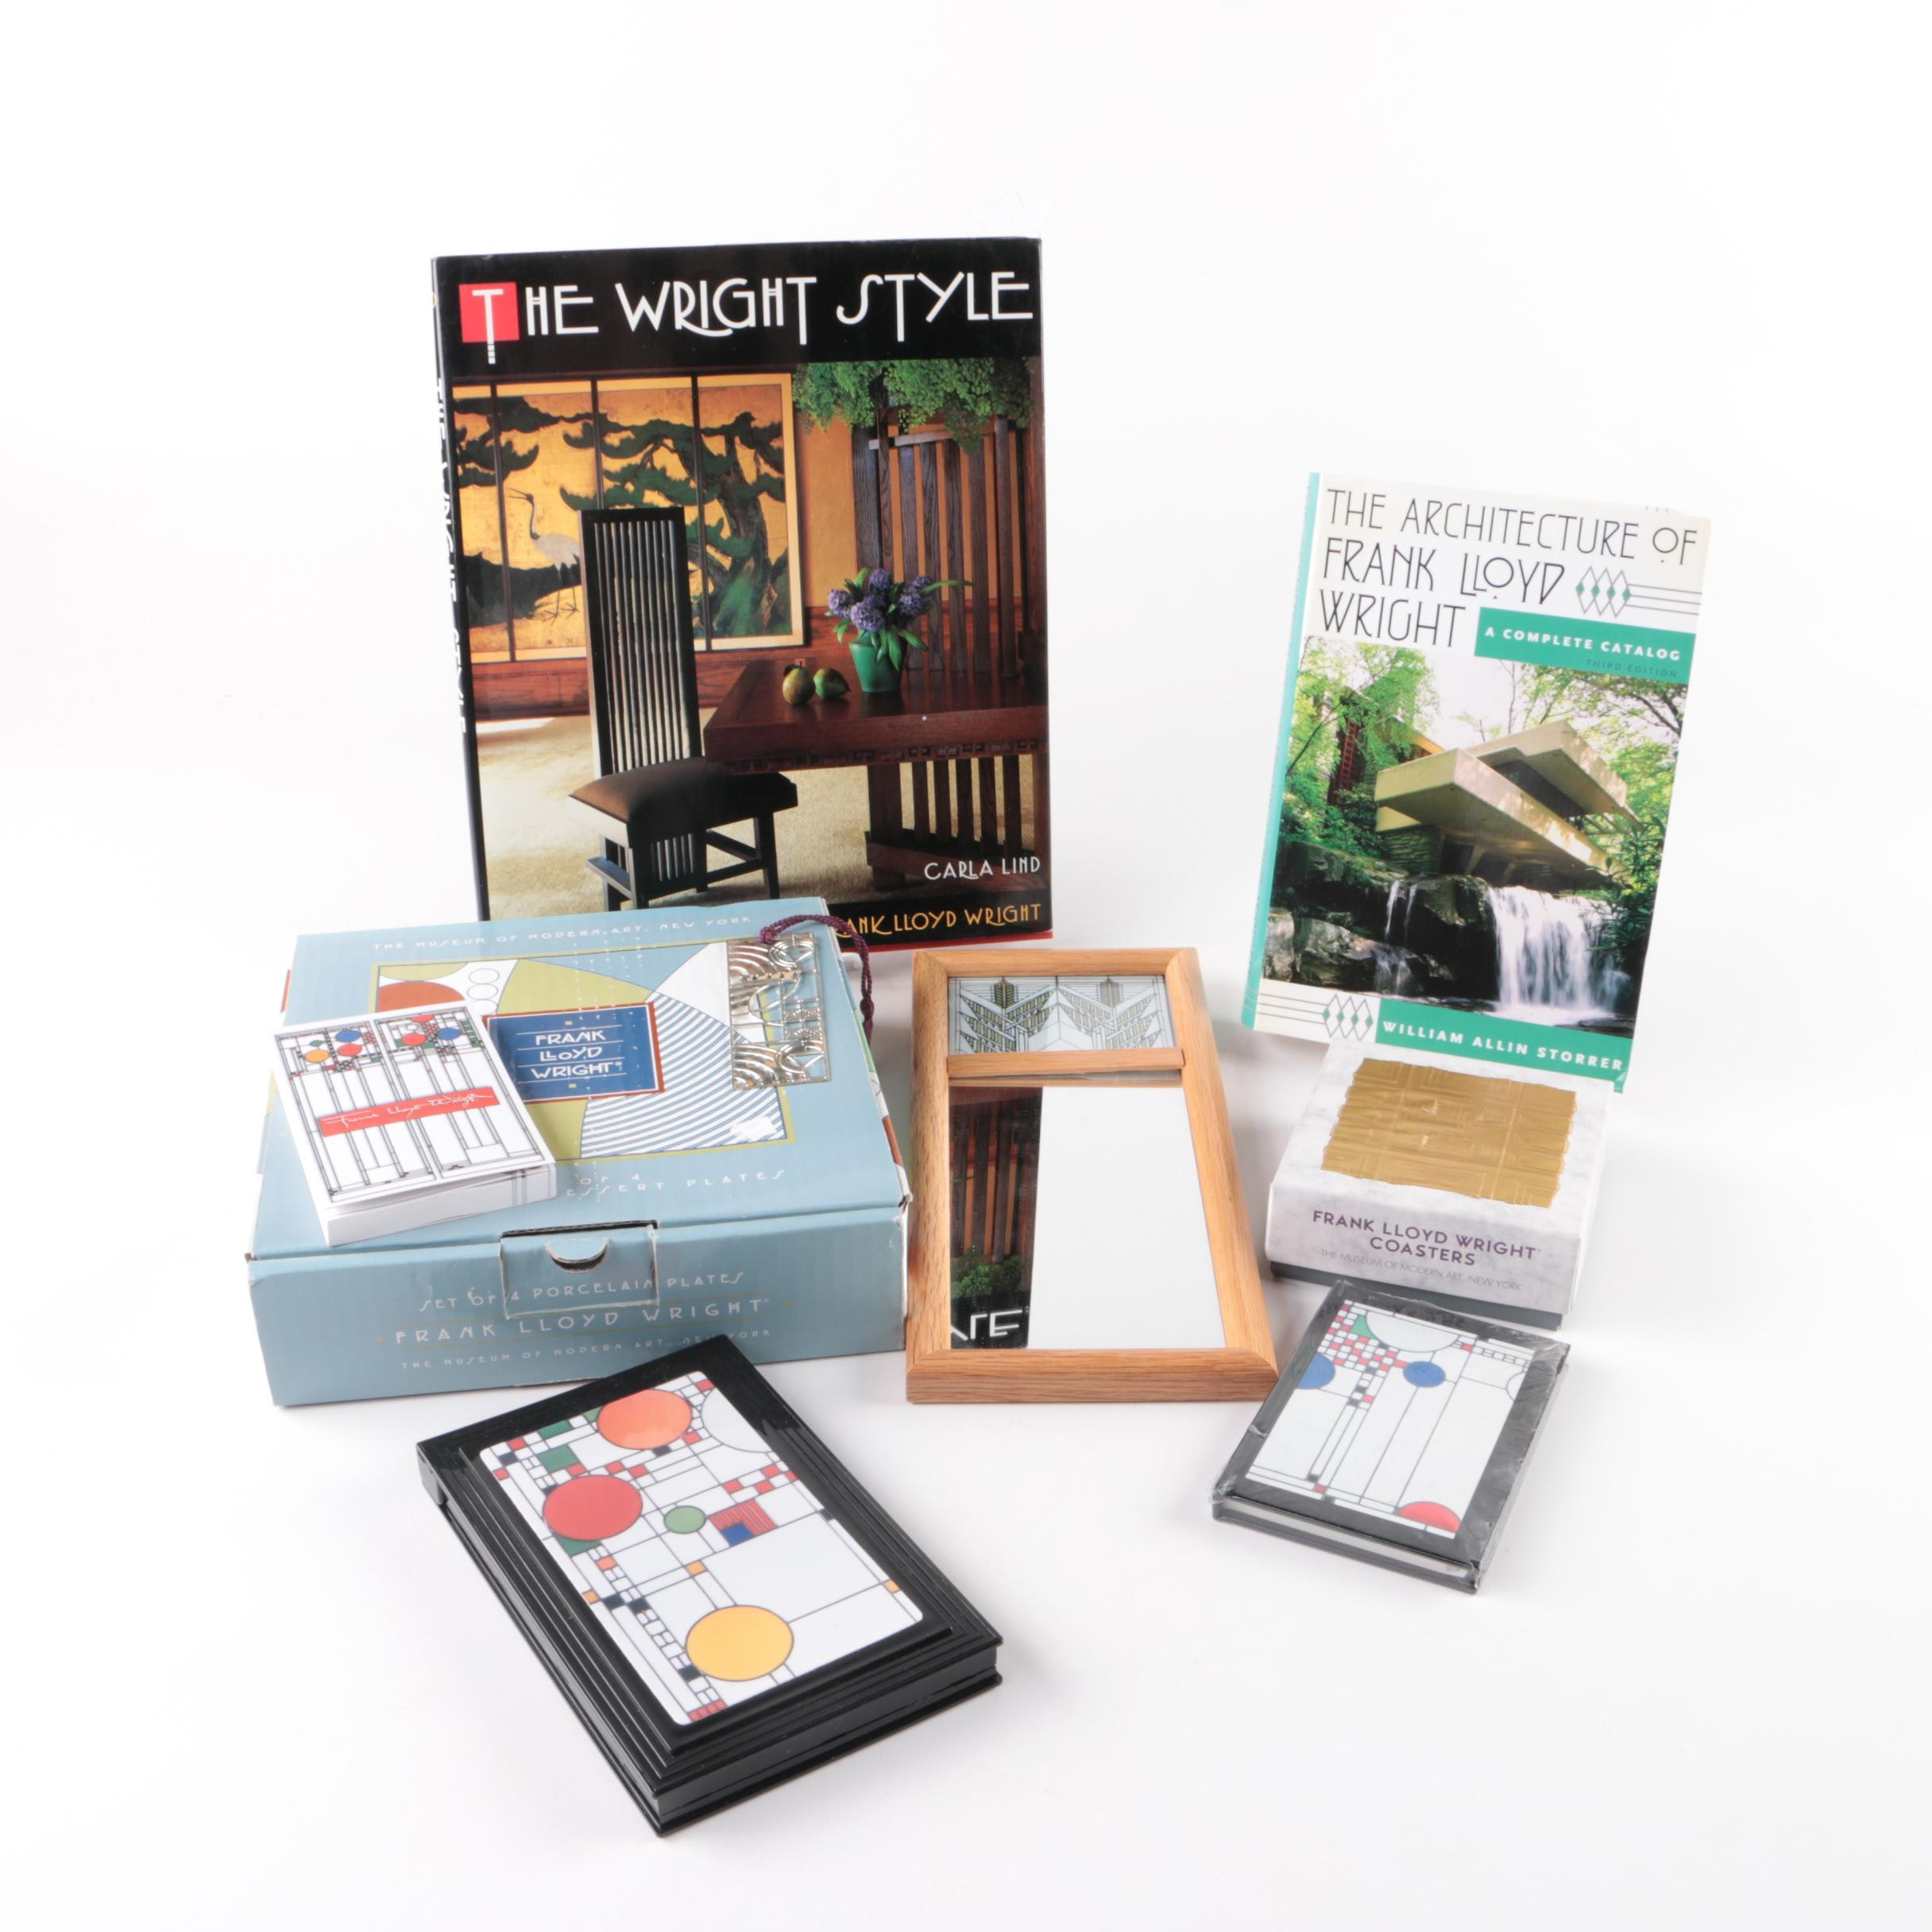 Frank Lloyd Wright Themed Books, Note Book and Home Décor